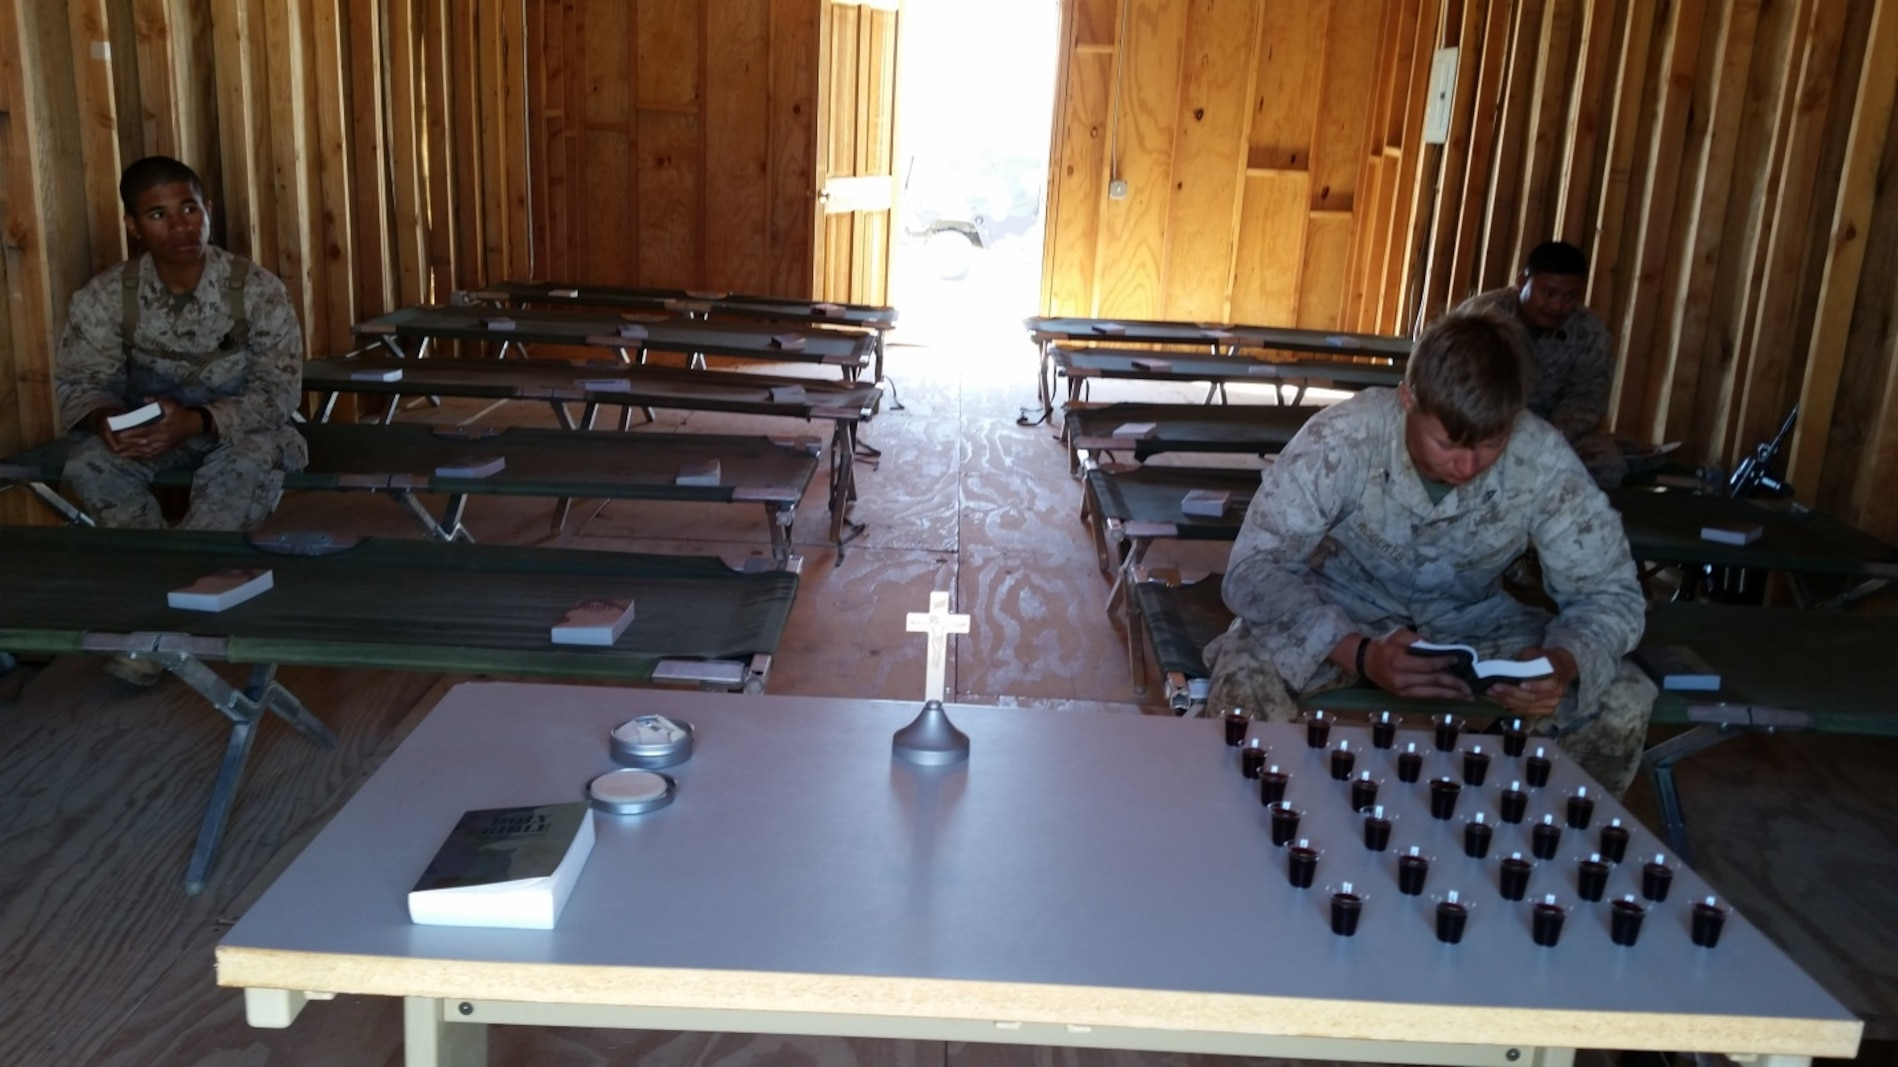 LFT to RT: Protestant Service: LCpl Tobia, LCpl Alex Roberts, HM1 Jasper Montes